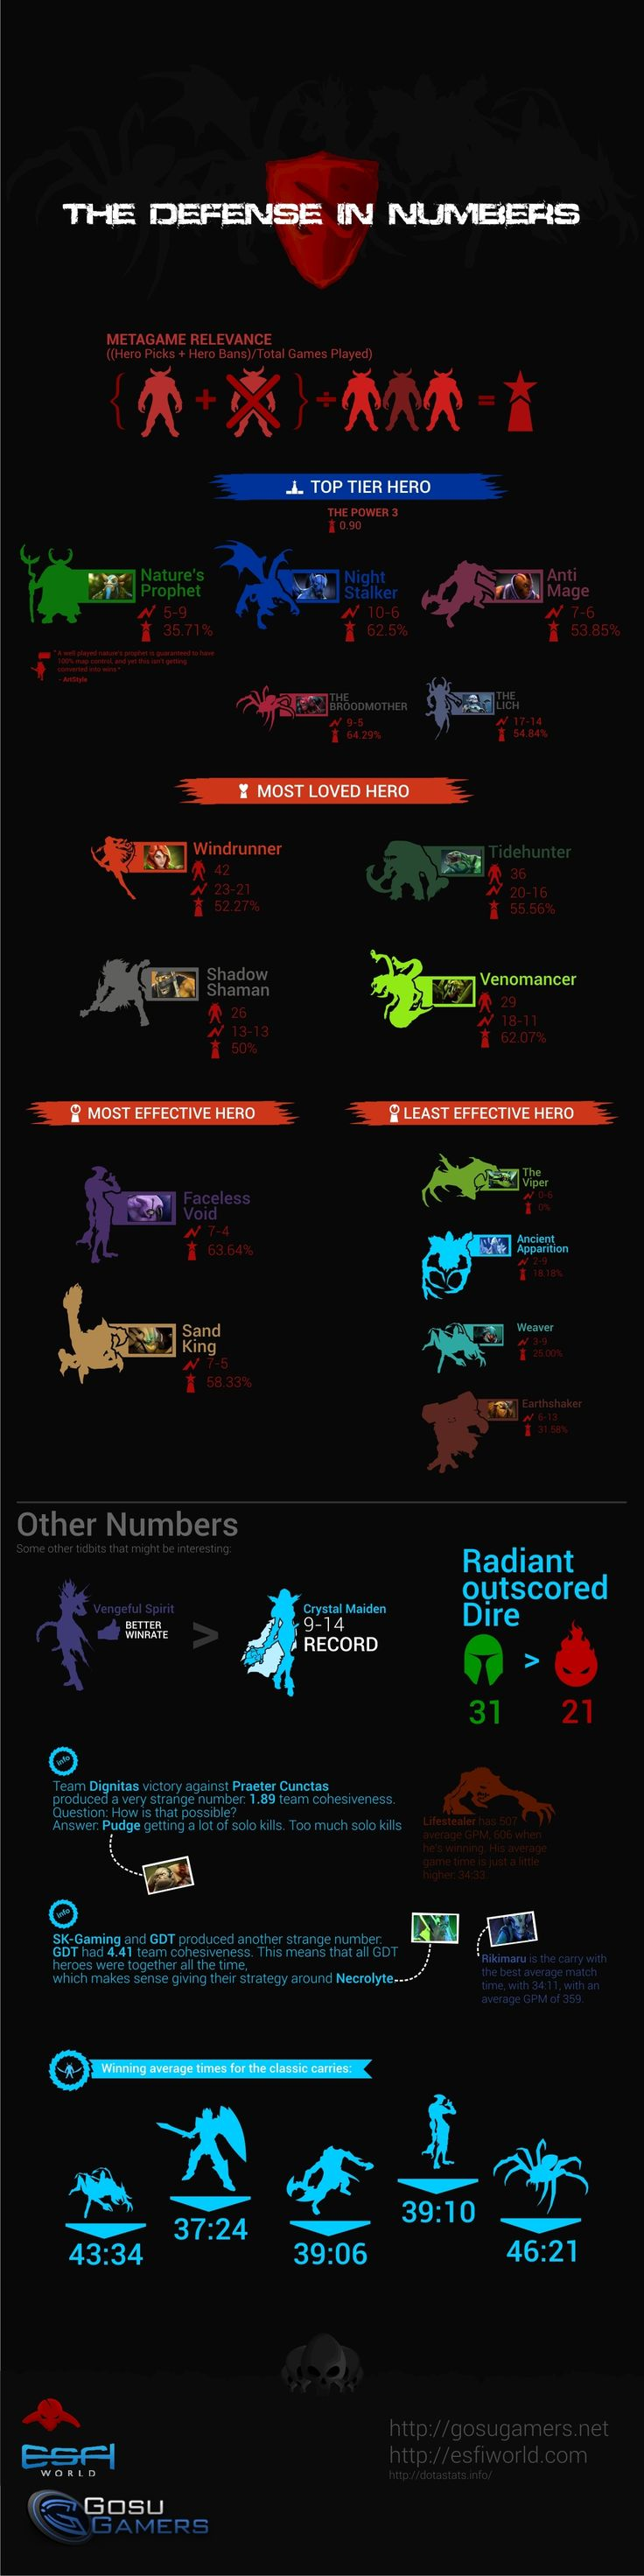 The Defense Dota 2 Tournament in NUMBERS